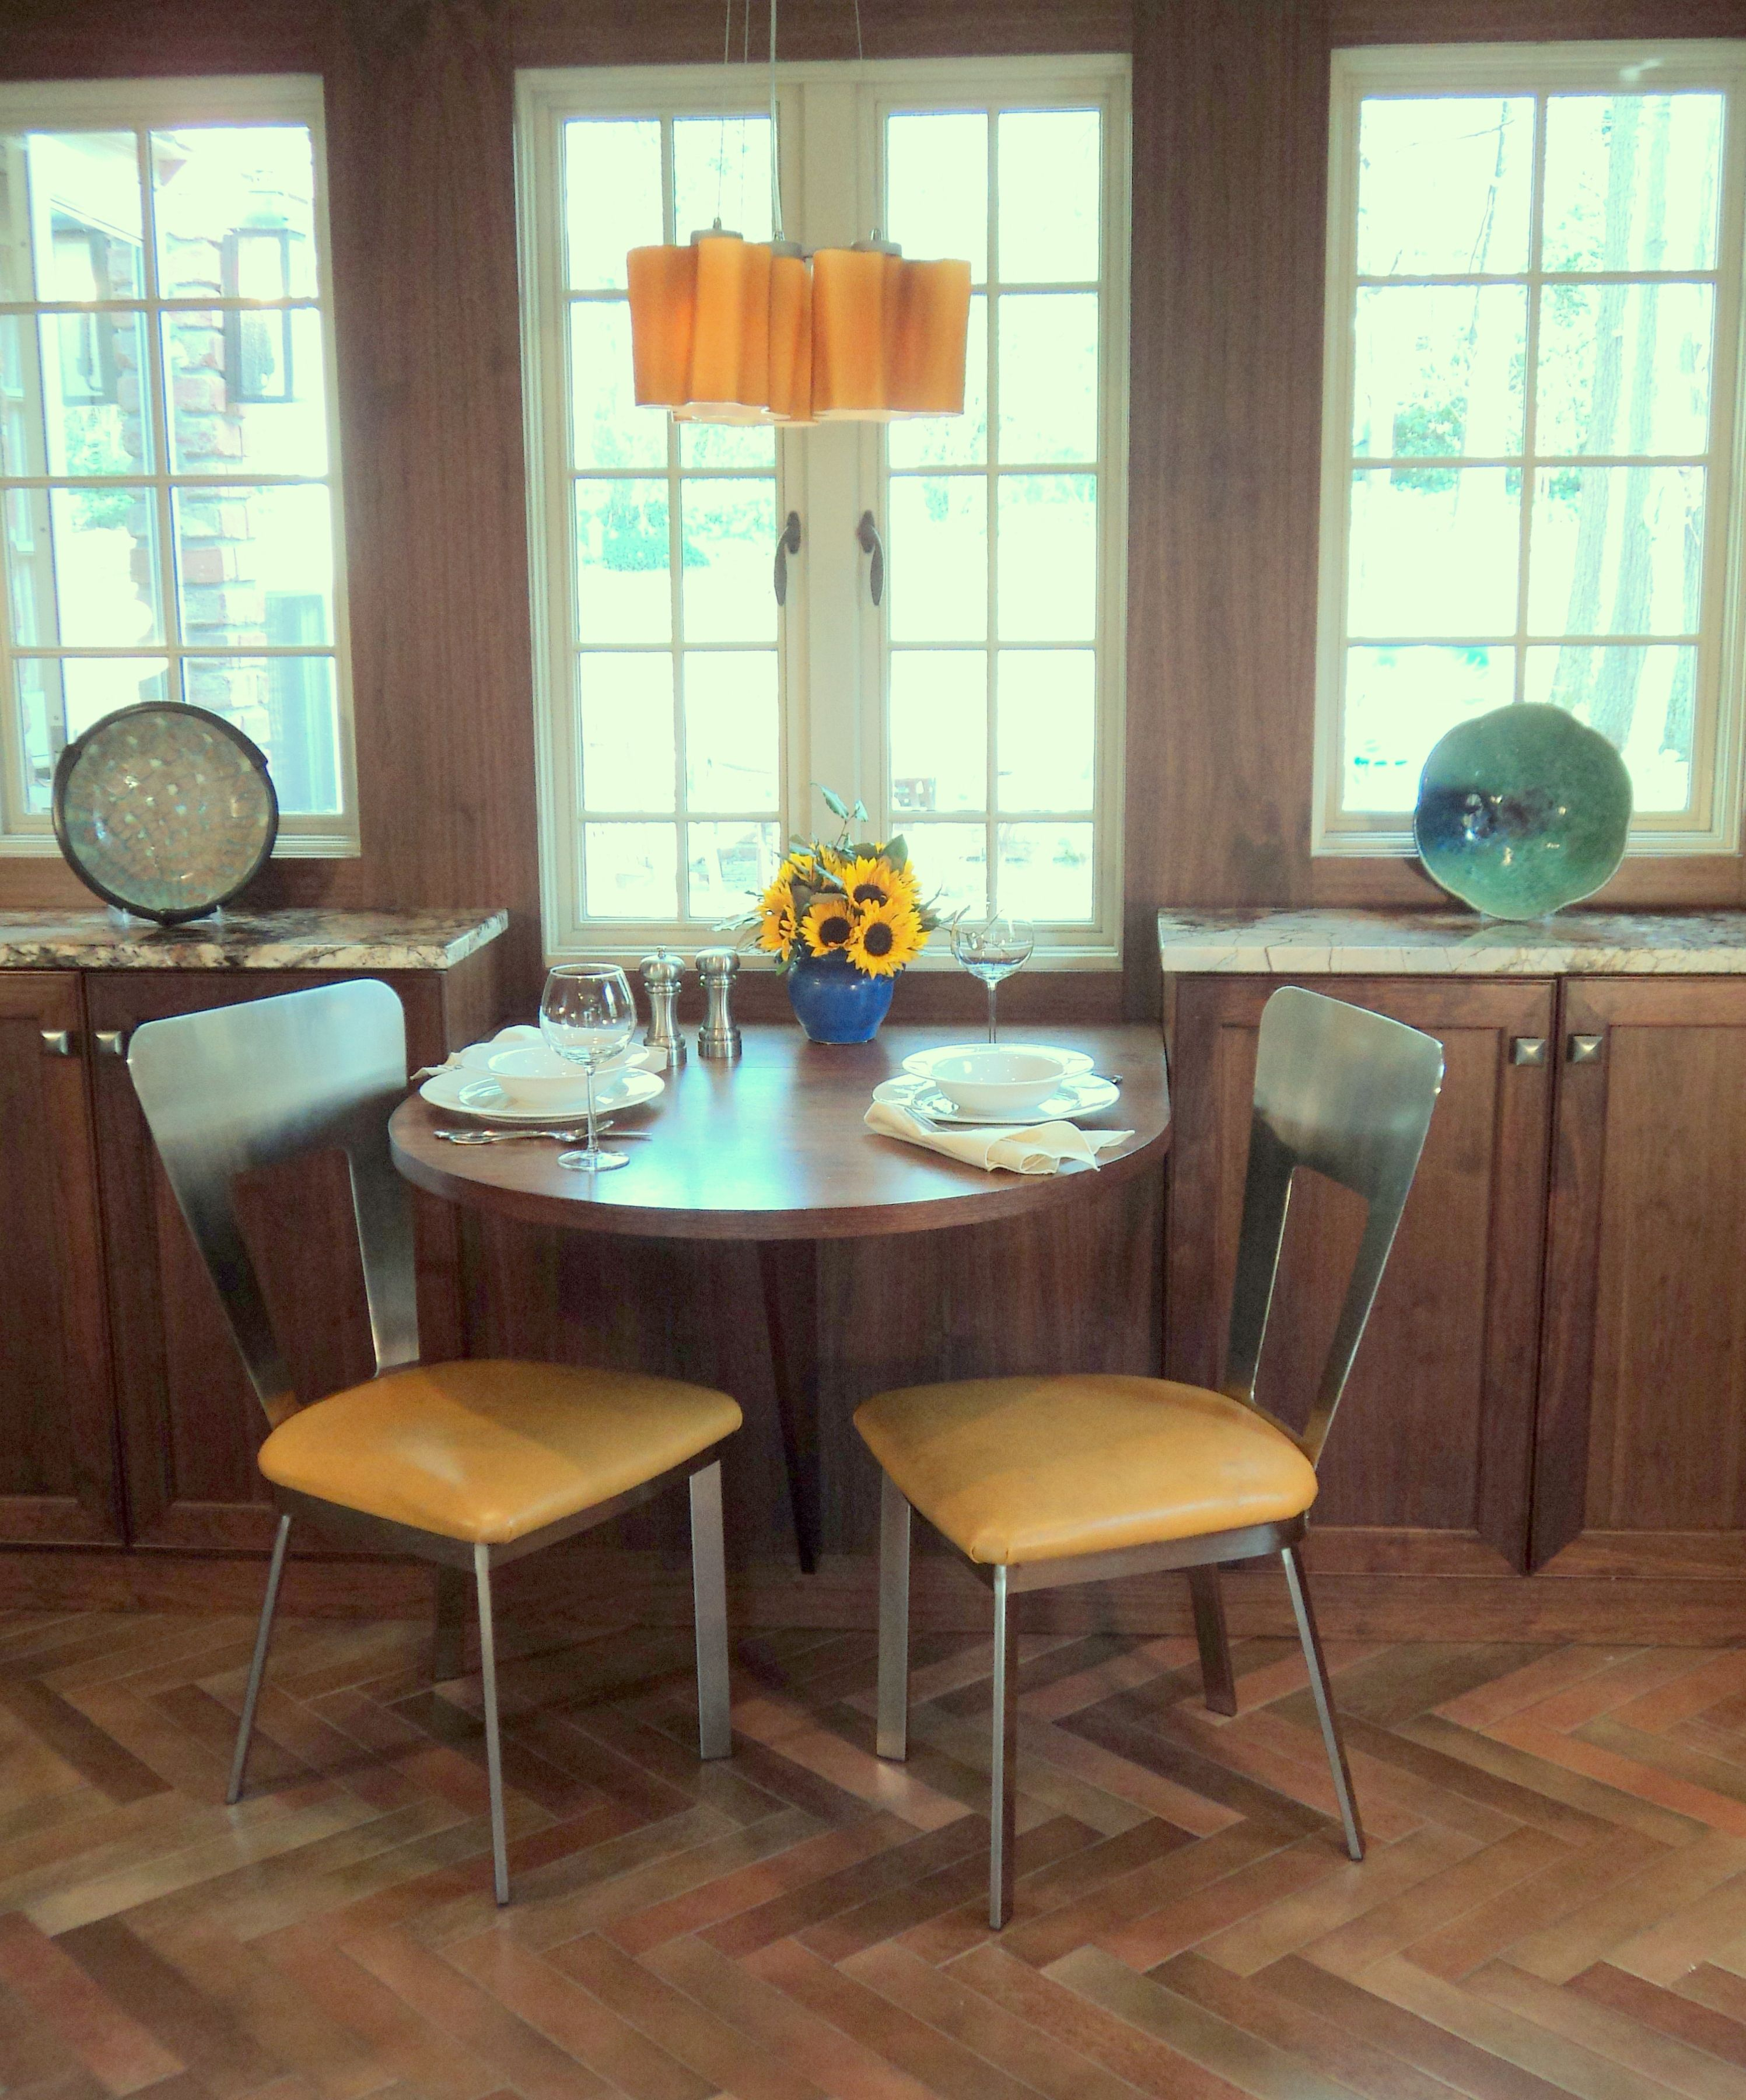 Stainless chairs with golden leather seats table top drops down to